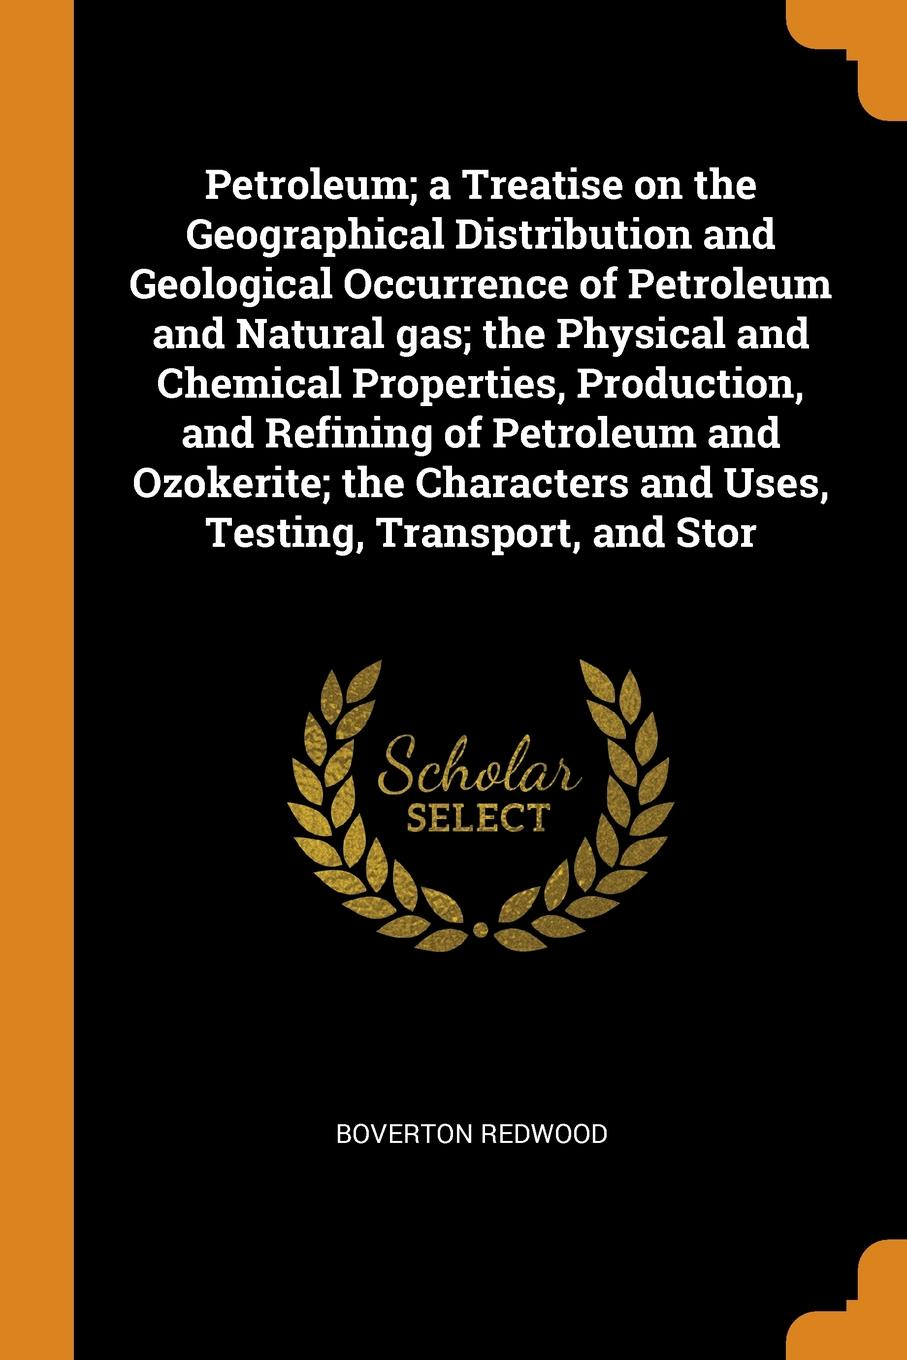 лучшая цена Boverton Redwood Petroleum; a Treatise on the Geographical Distribution and Geological Occurrence of Petroleum and Natural gas; the Physical and Chemical Properties, Production, and Refining of Petroleum and Ozokerite; the Characters and Uses, Testing, Transport, ...